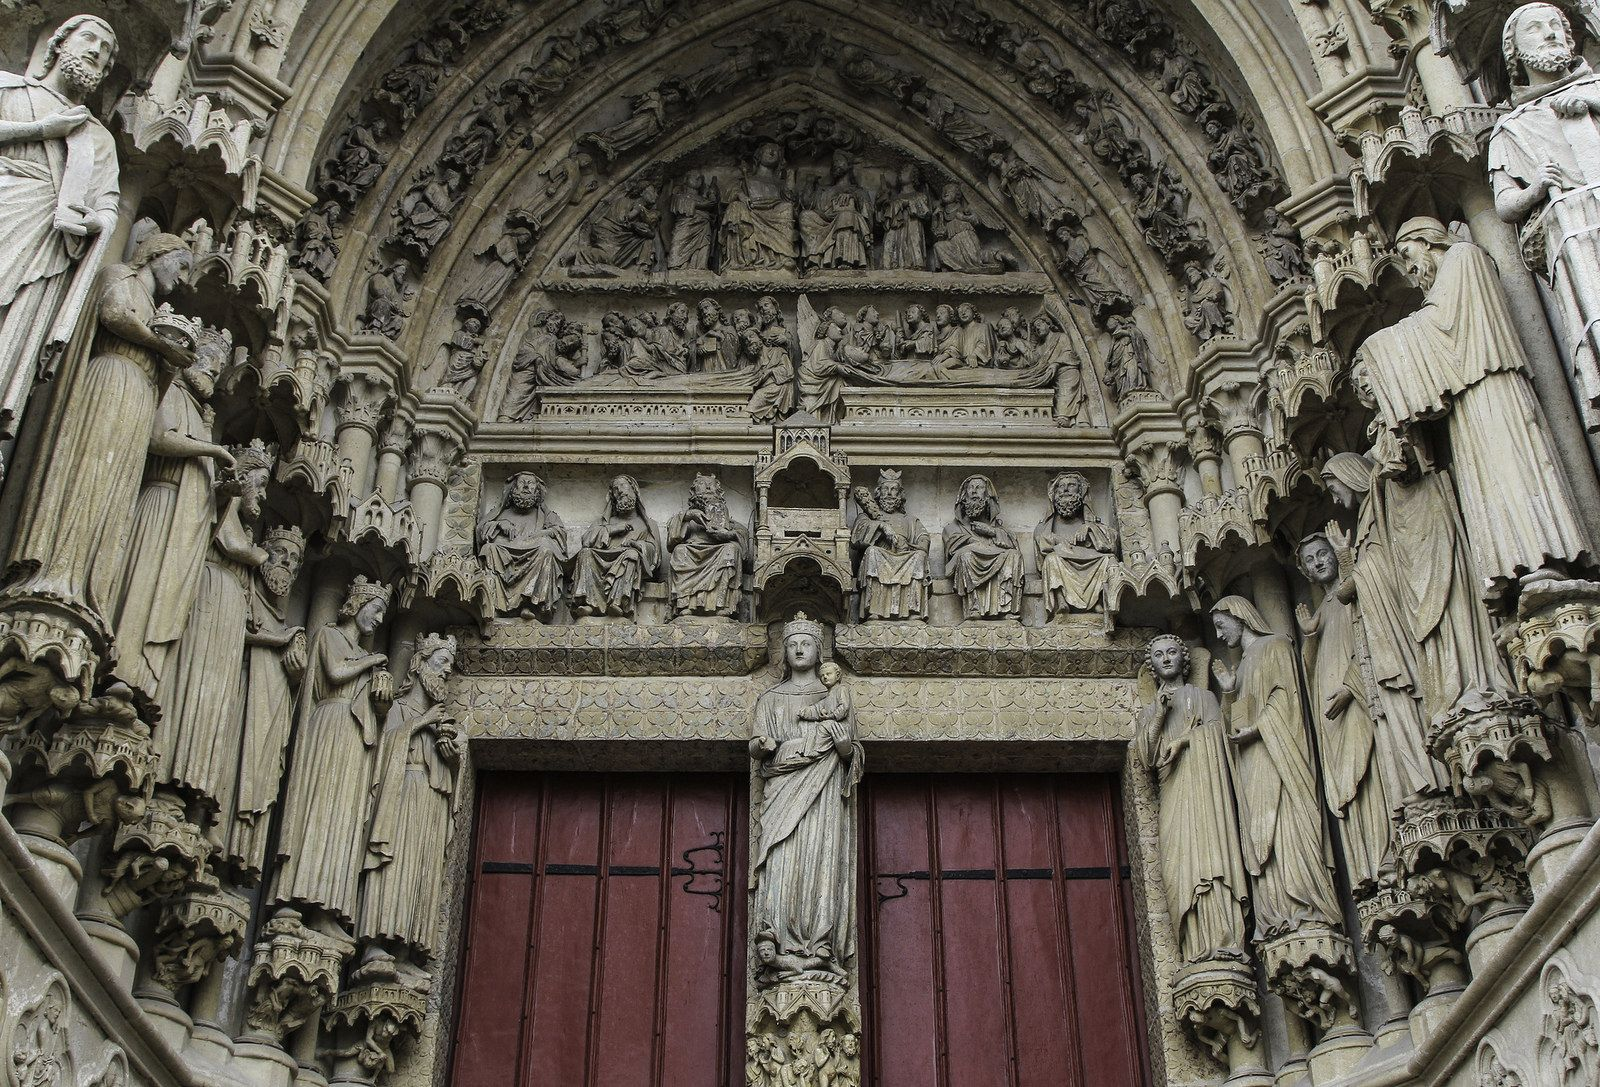 Queen of Heaven and Earth - This is the right-hand portal in the west facade of Amiens Cathedral, built c.1230-40. In the tympanum we see the dormition of Our Lady, her assumption, and her coronation as Queen. | da Lawrence OP